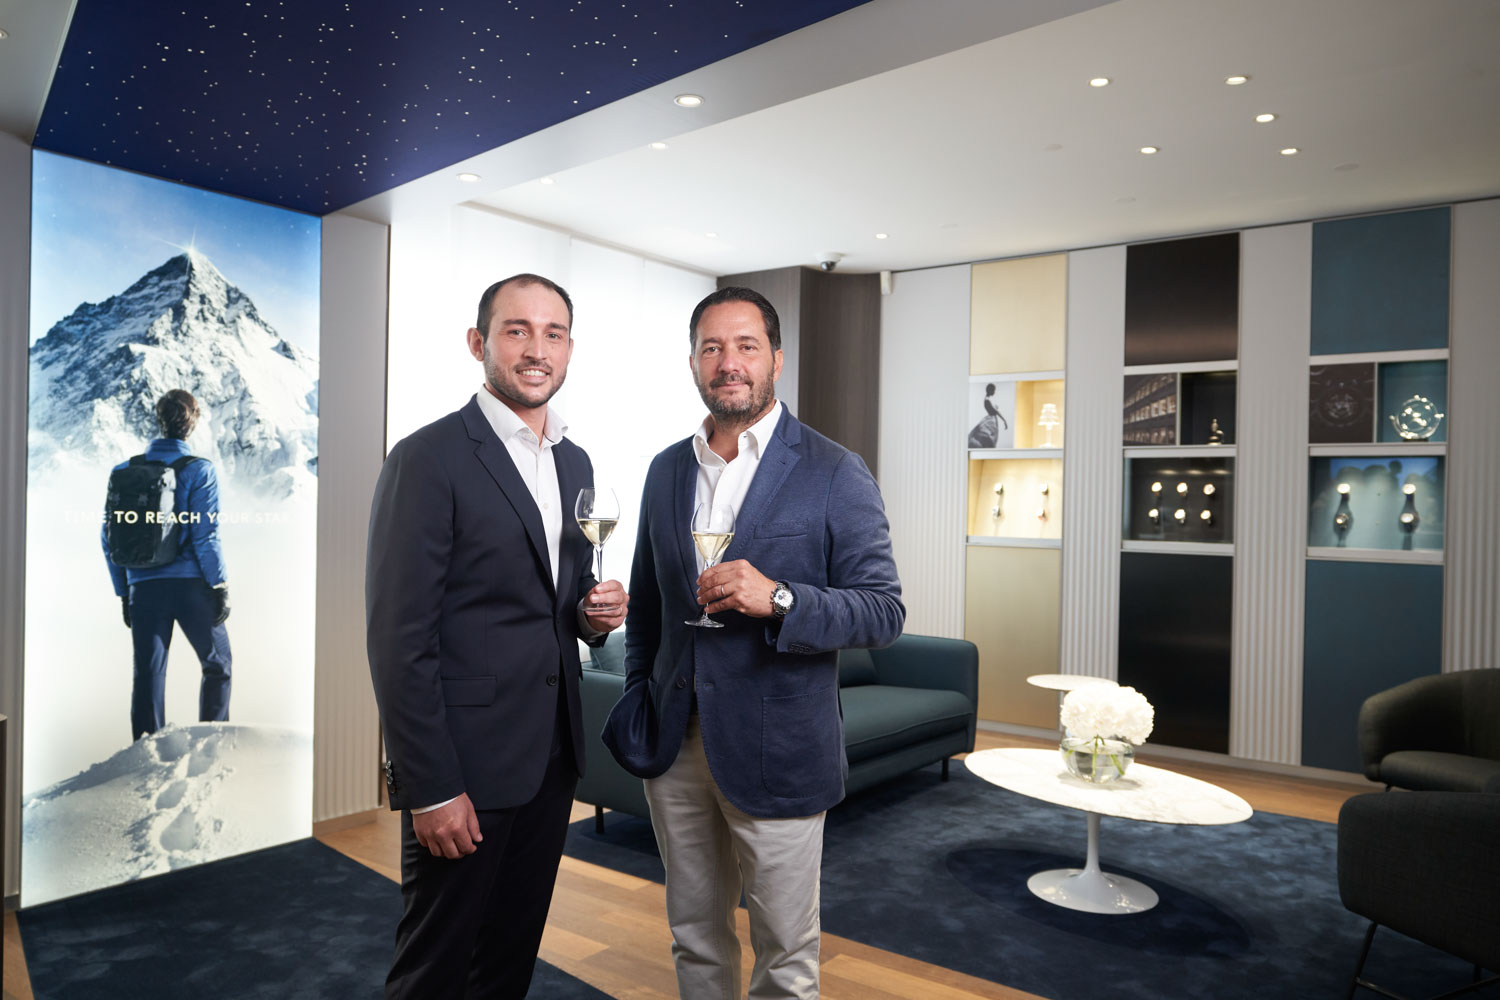 (R-L) Zenith CEO, Julien Tornare and the Brand Manager in Switzerland, Jean-Philippe Masson